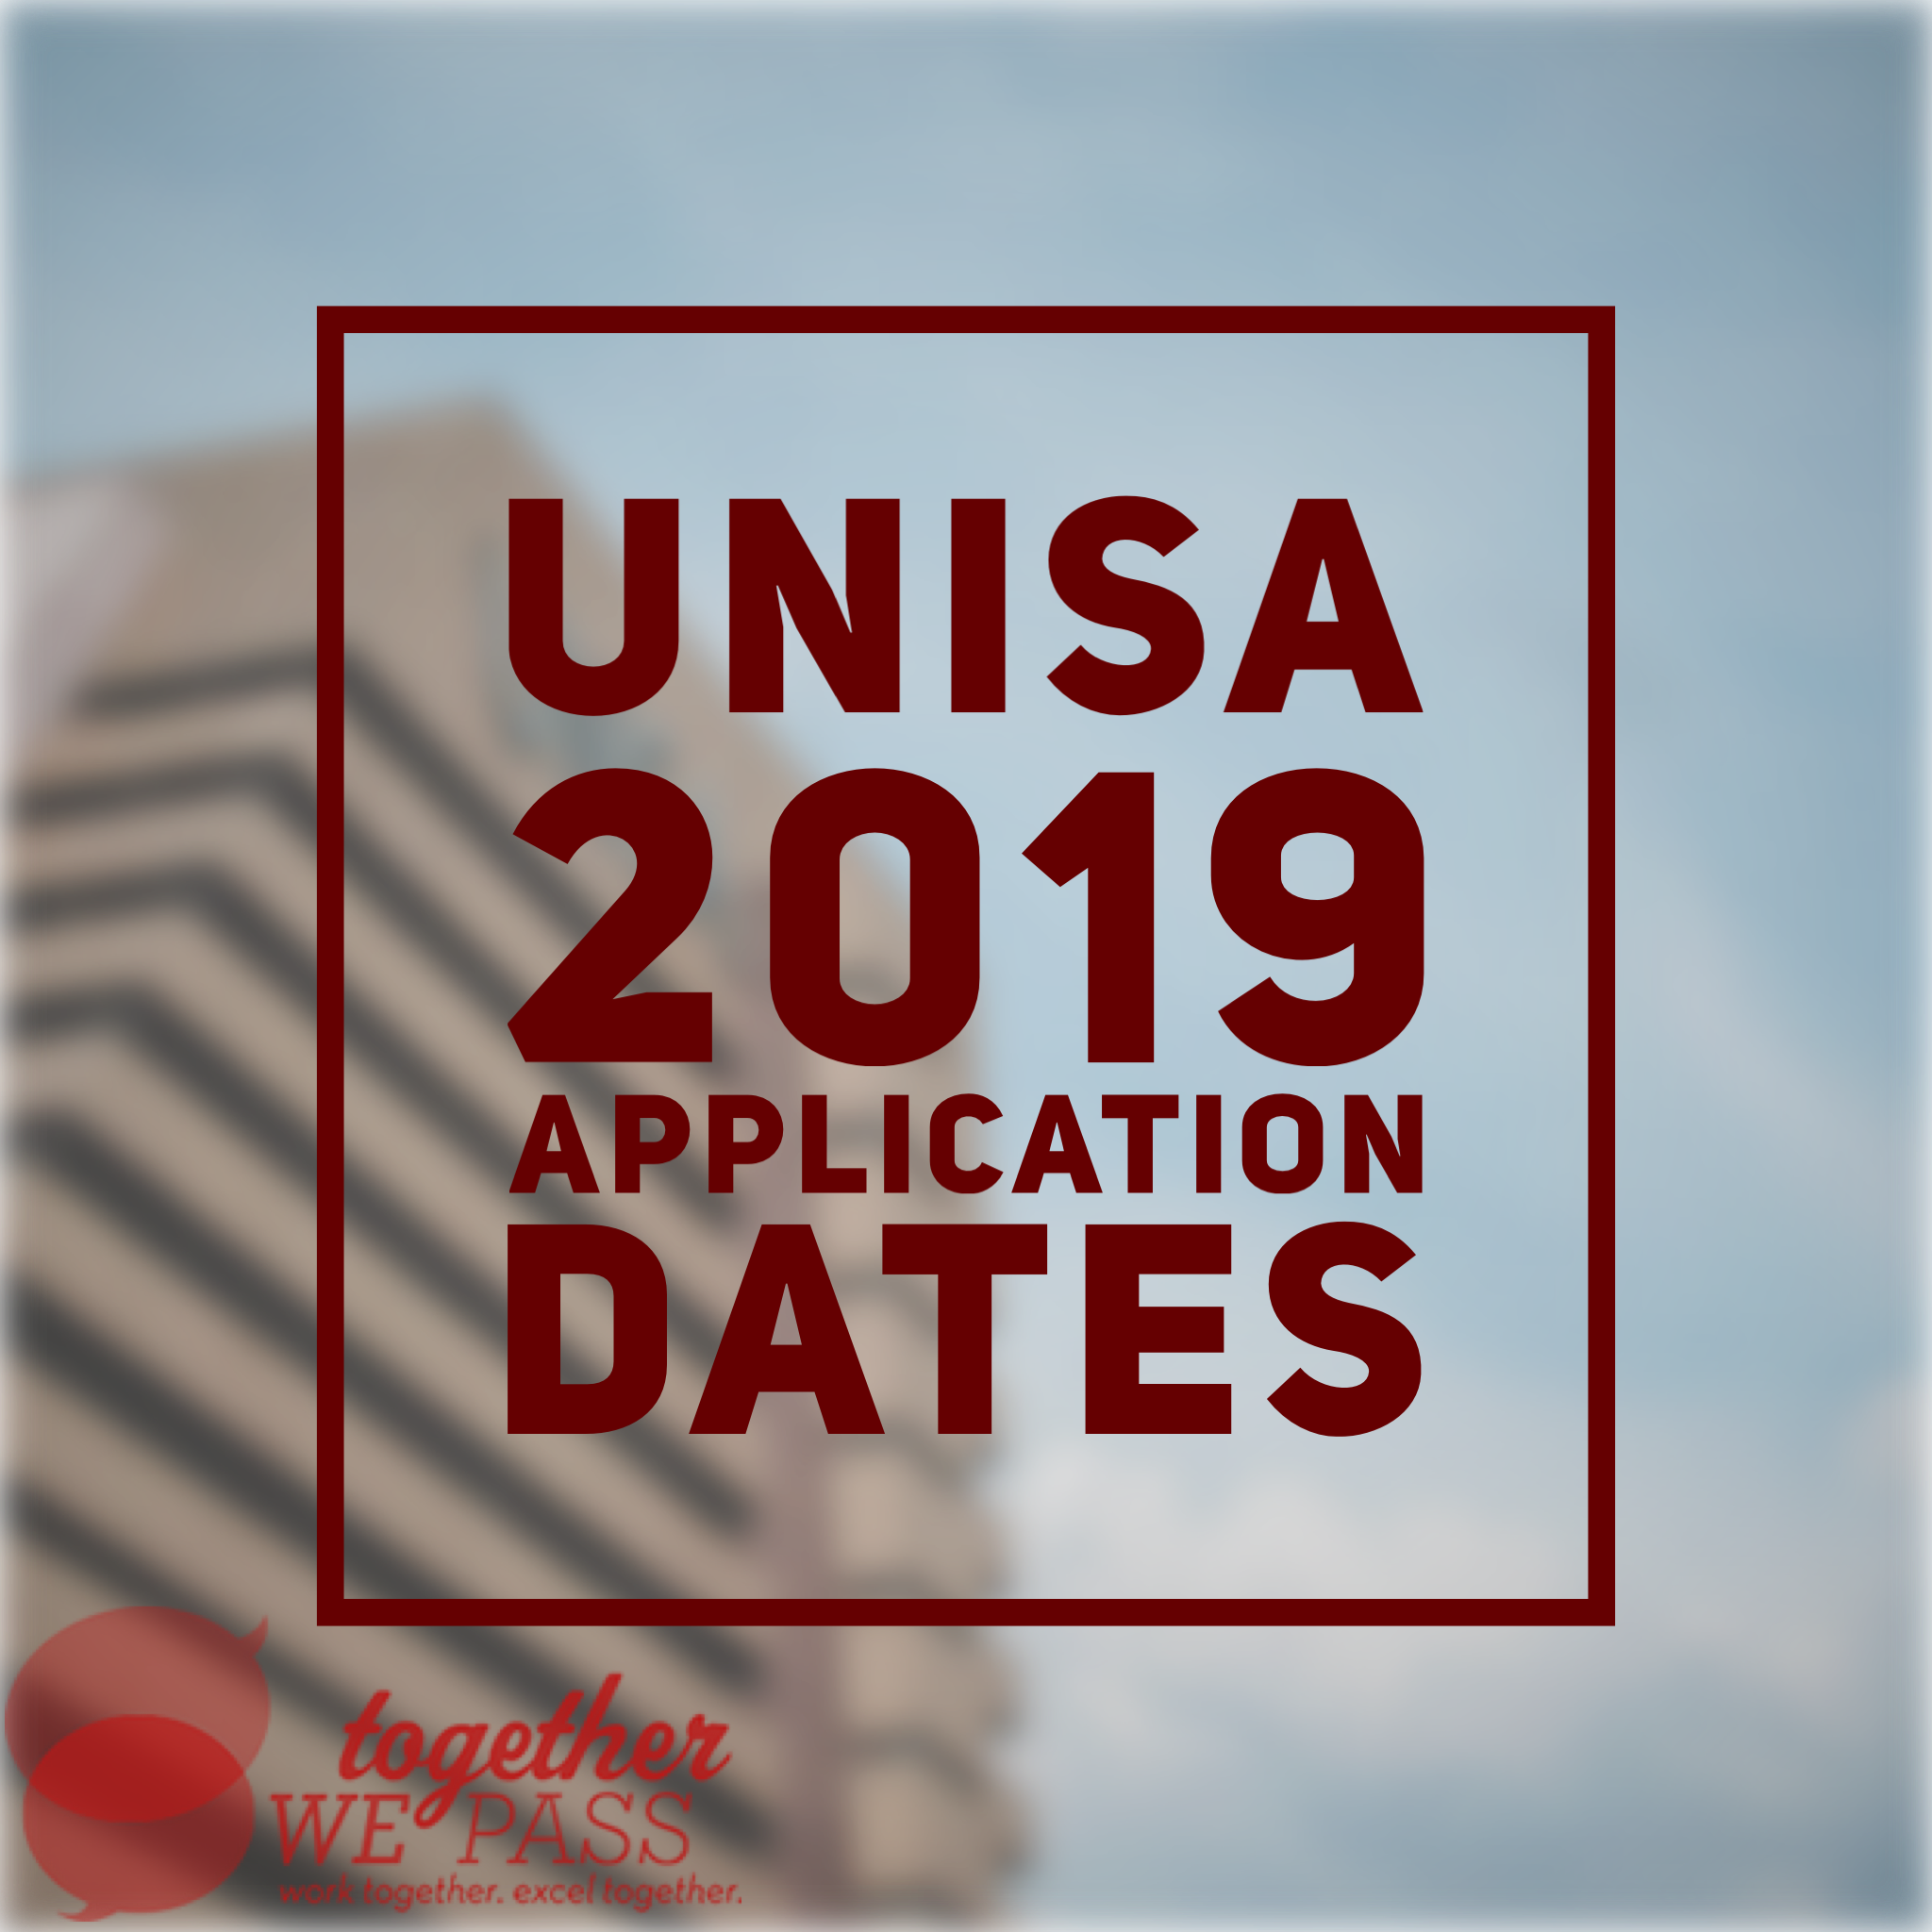 Unisa 2019 Application Dates